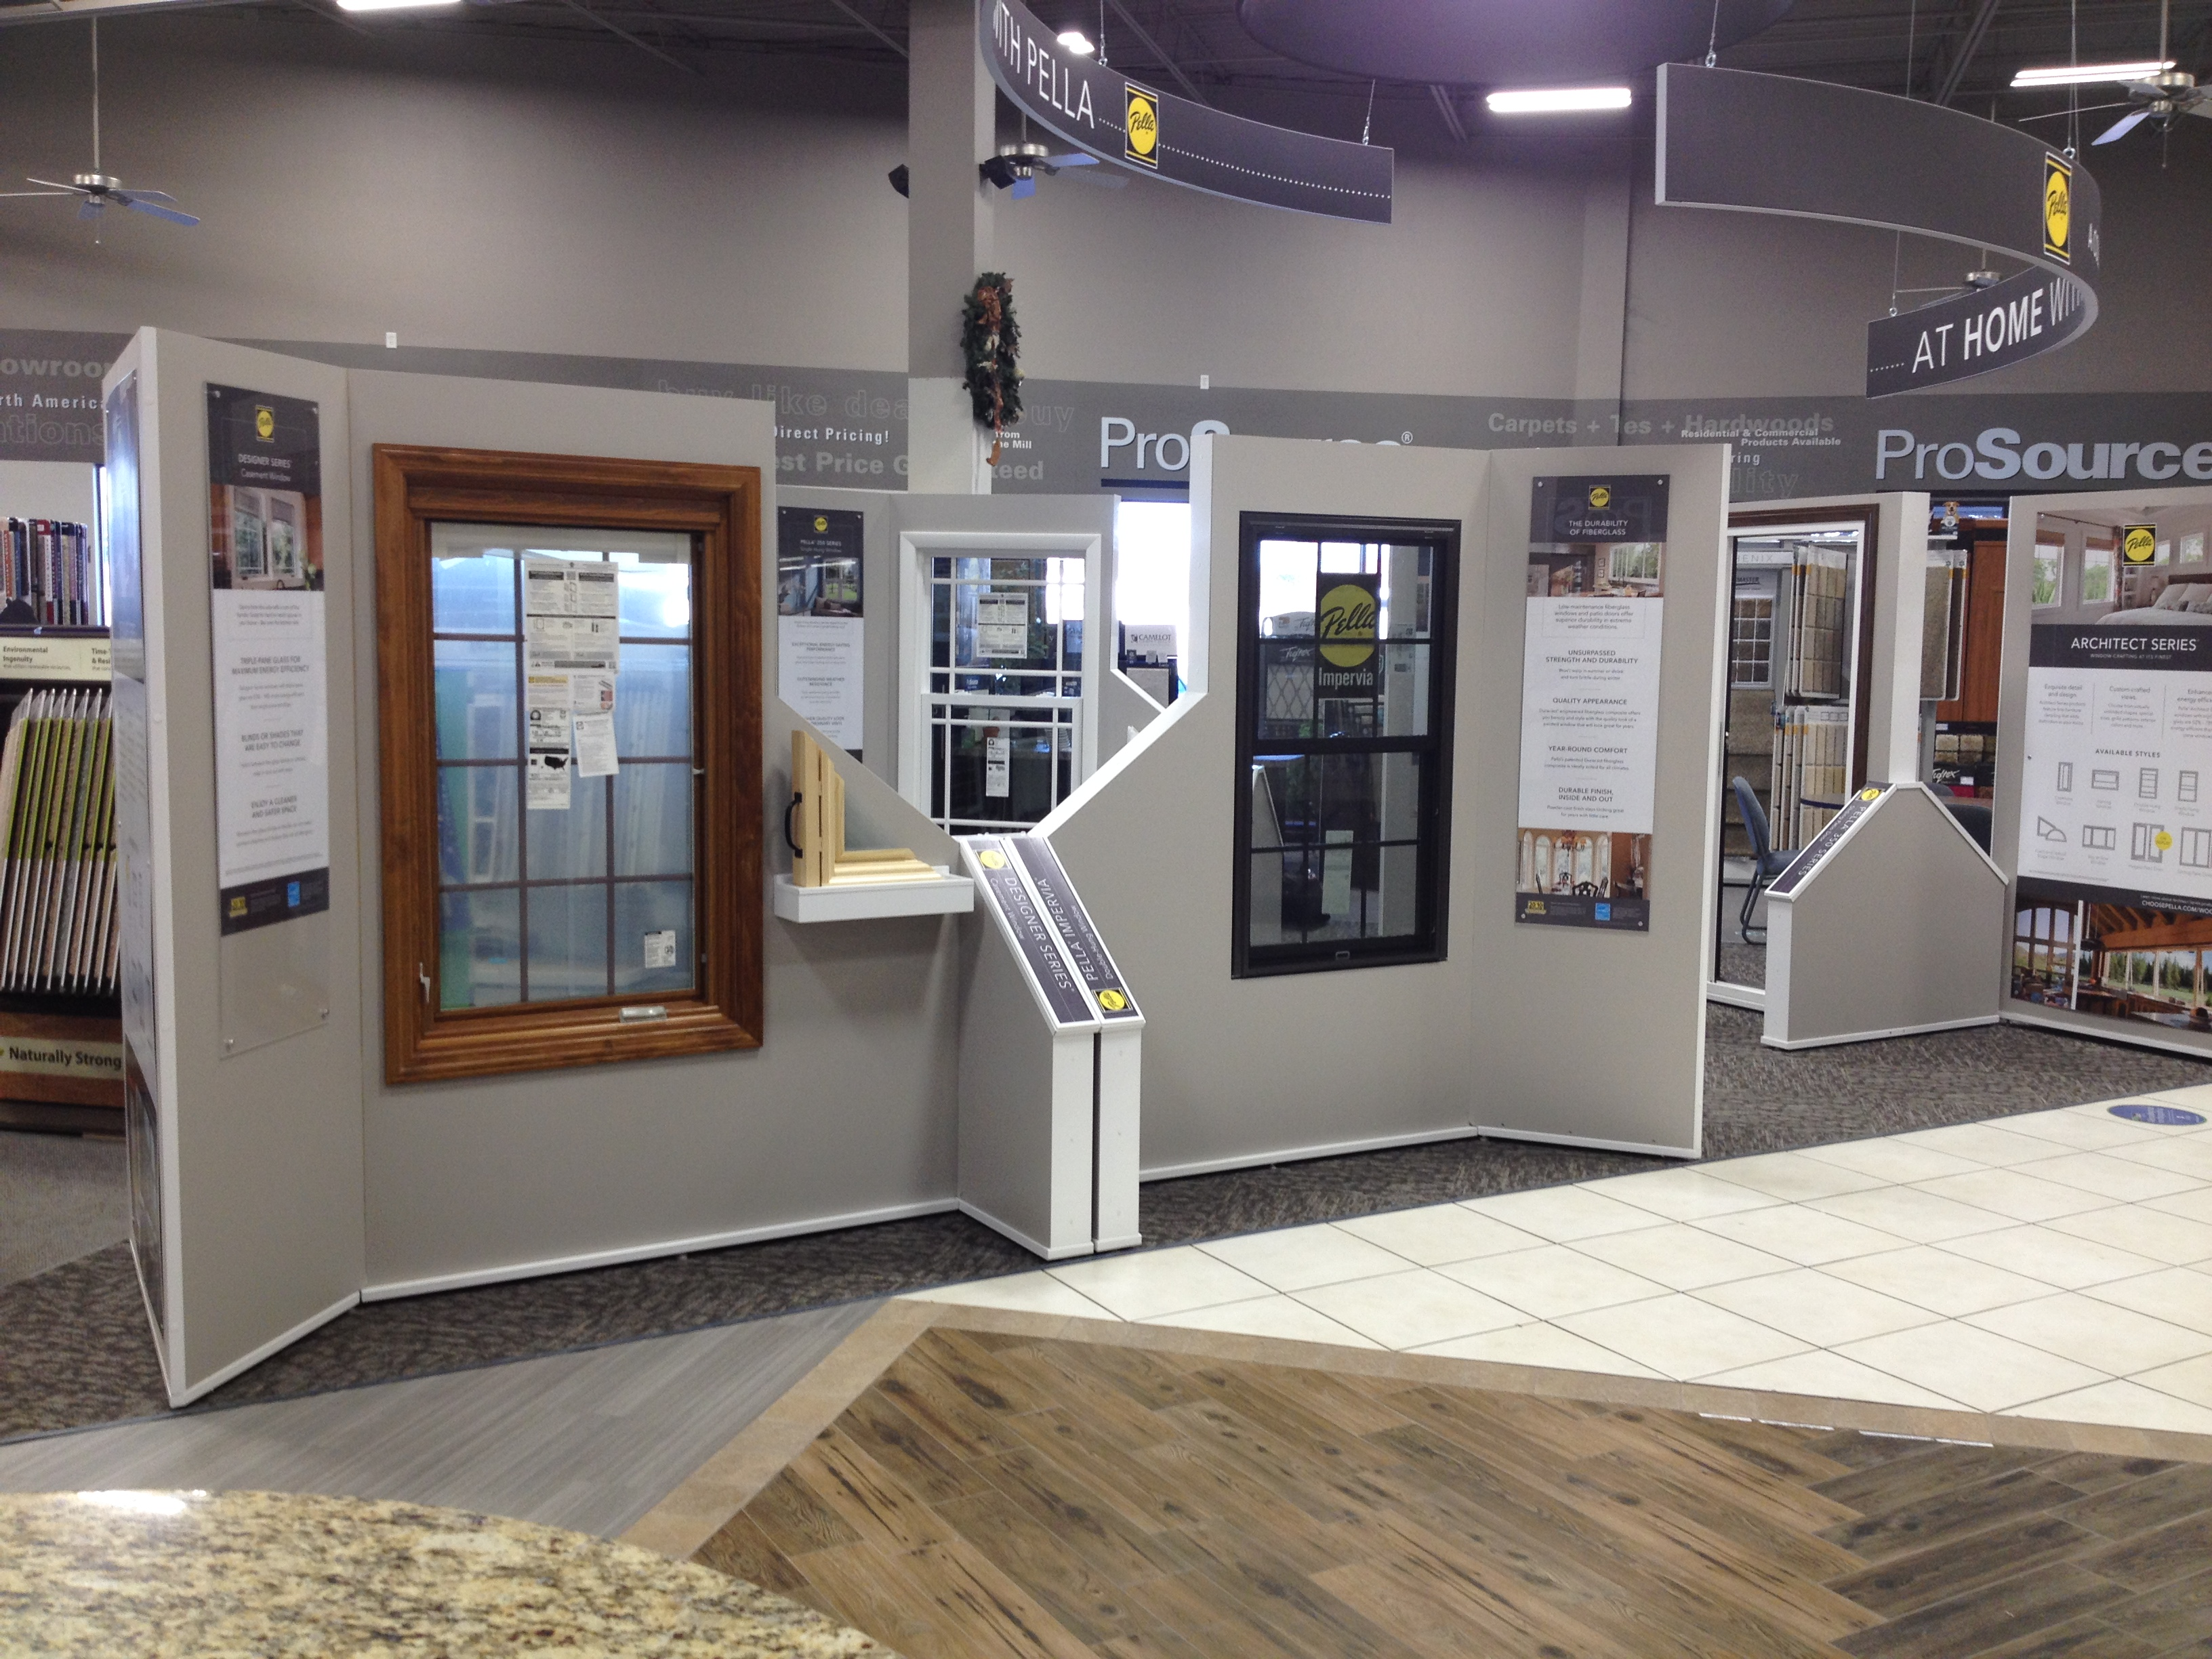 Prosource Stores - Pella Window and Door Showroom & Retail Displays Fixtures Environments